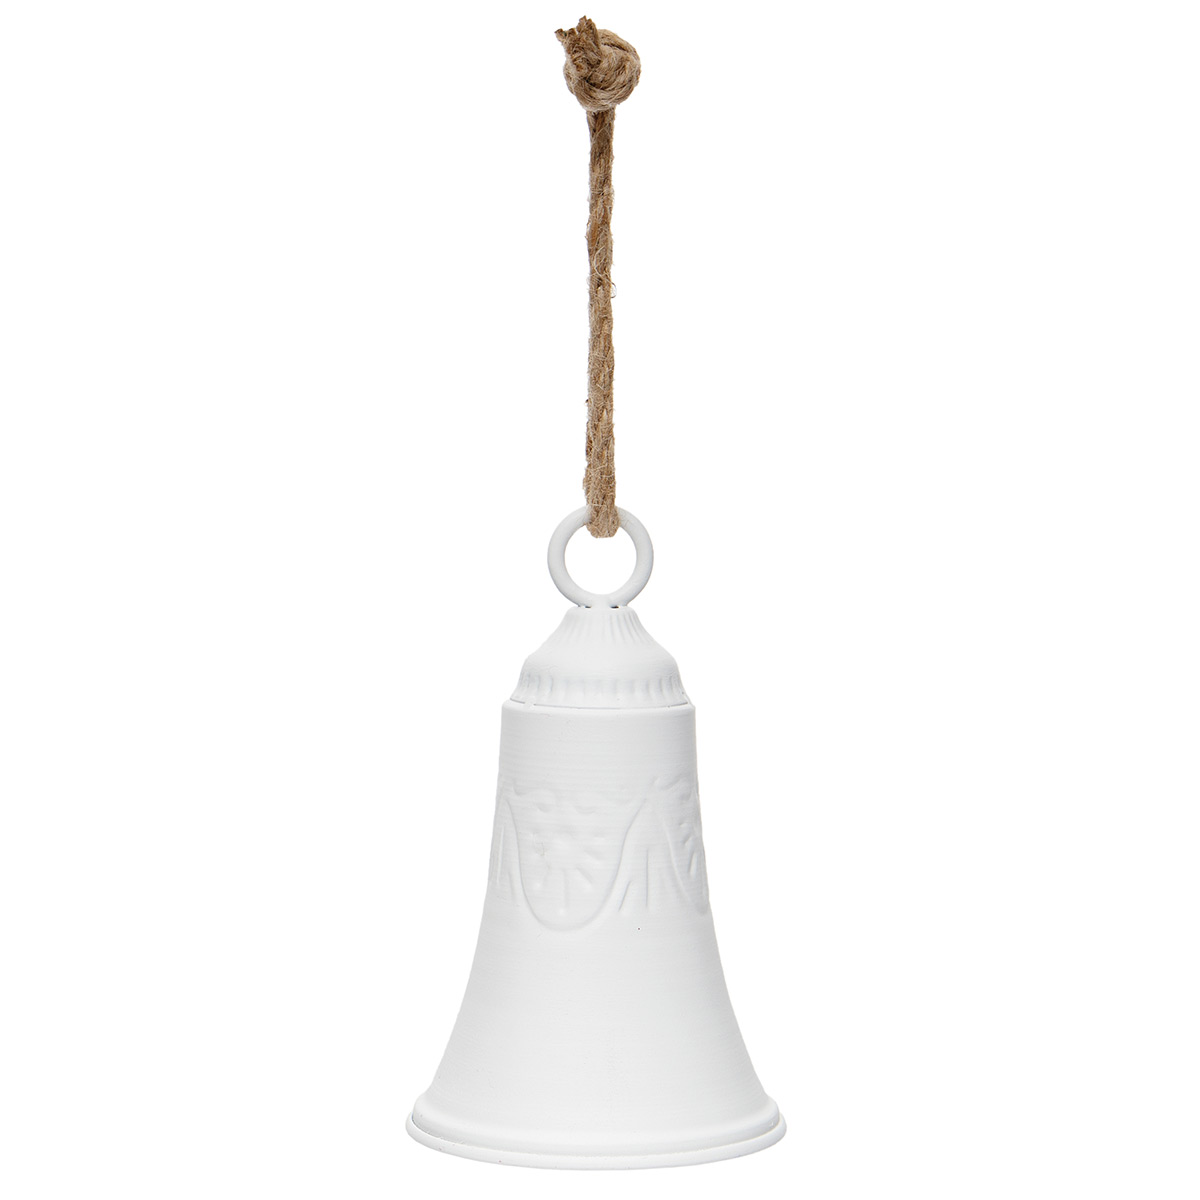 "METAL CHURCH BELL MATTE WHITE WITH ROPE HANGER 4""X7"""